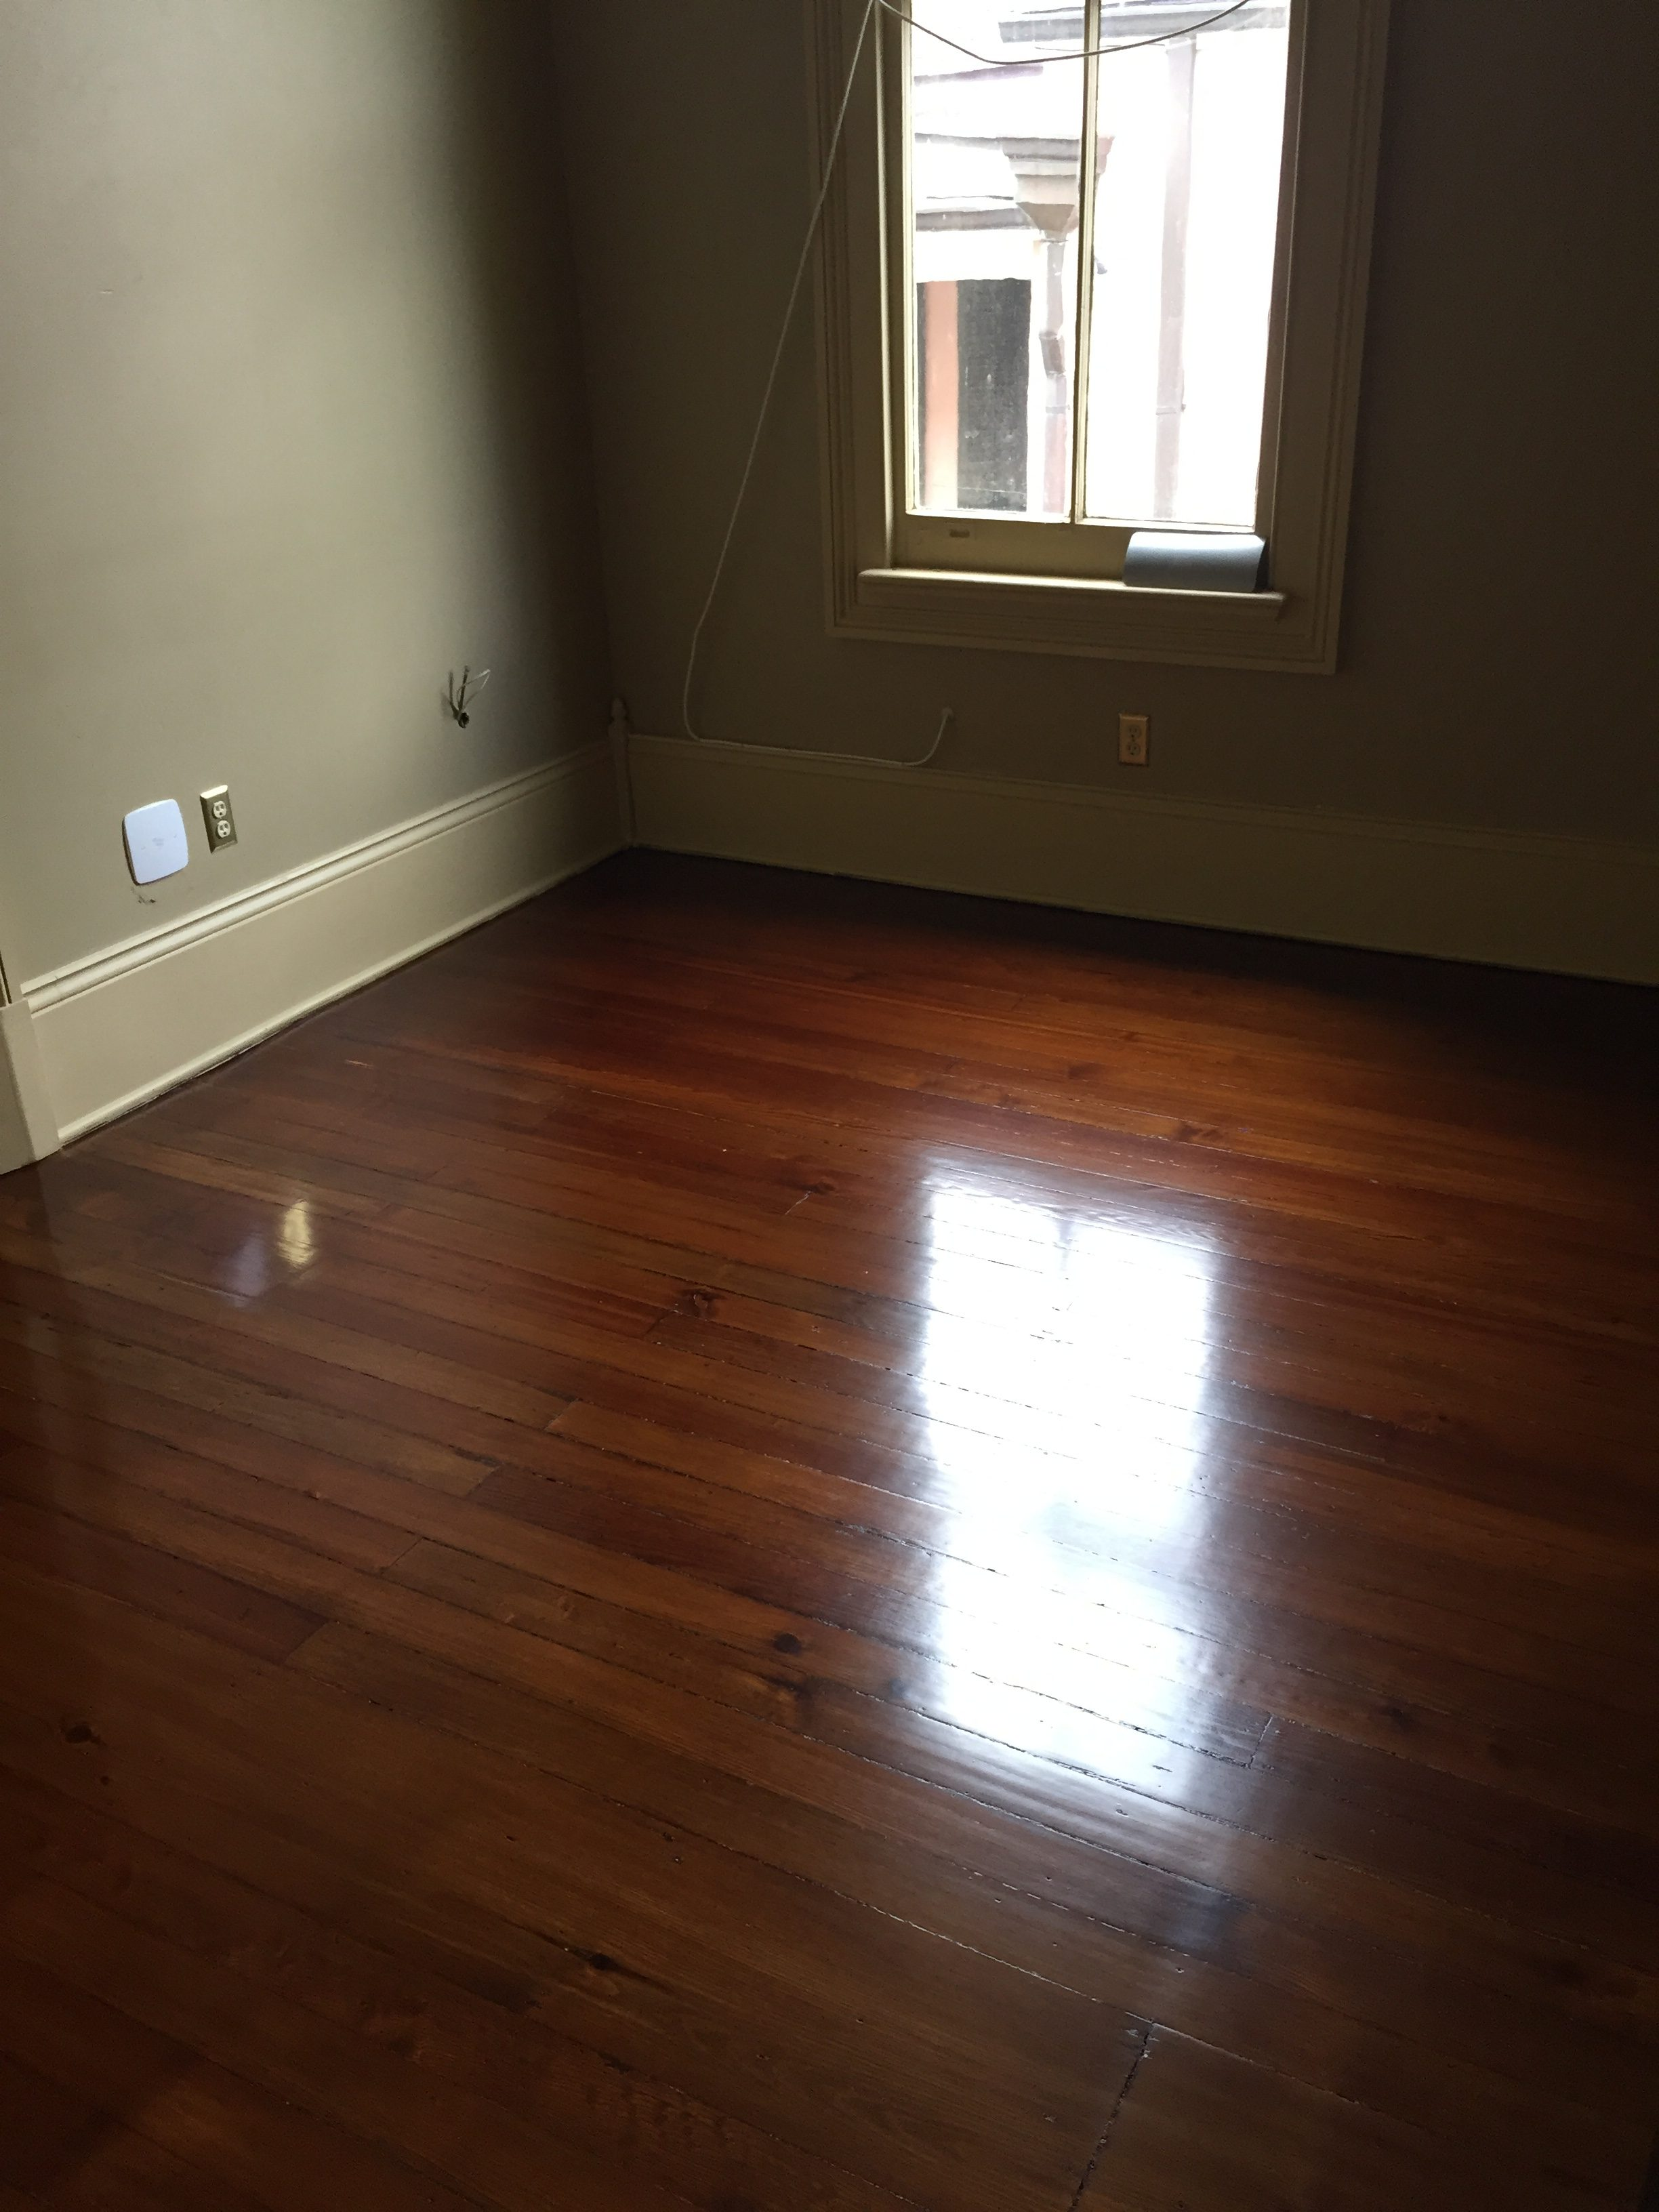 This is a bedroom of refinished hardwood pine floors.